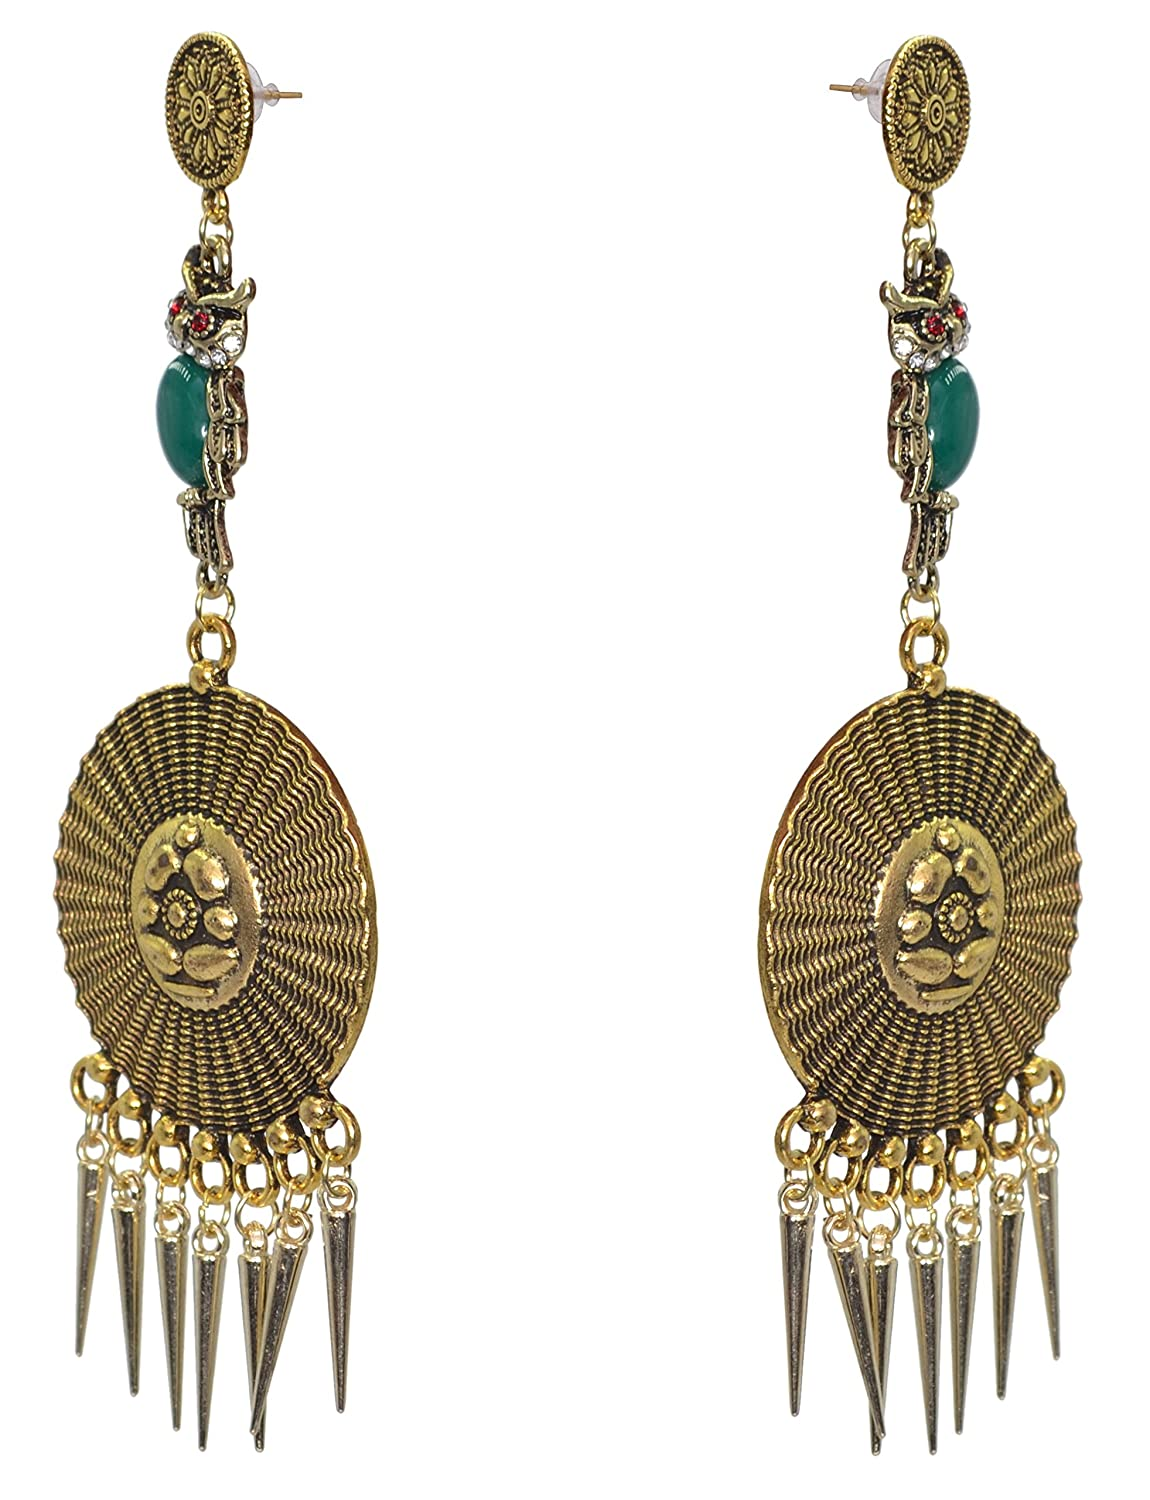 Sansar India Owl Charm Dangler Indian Earrings Jewelry for Girls and Women